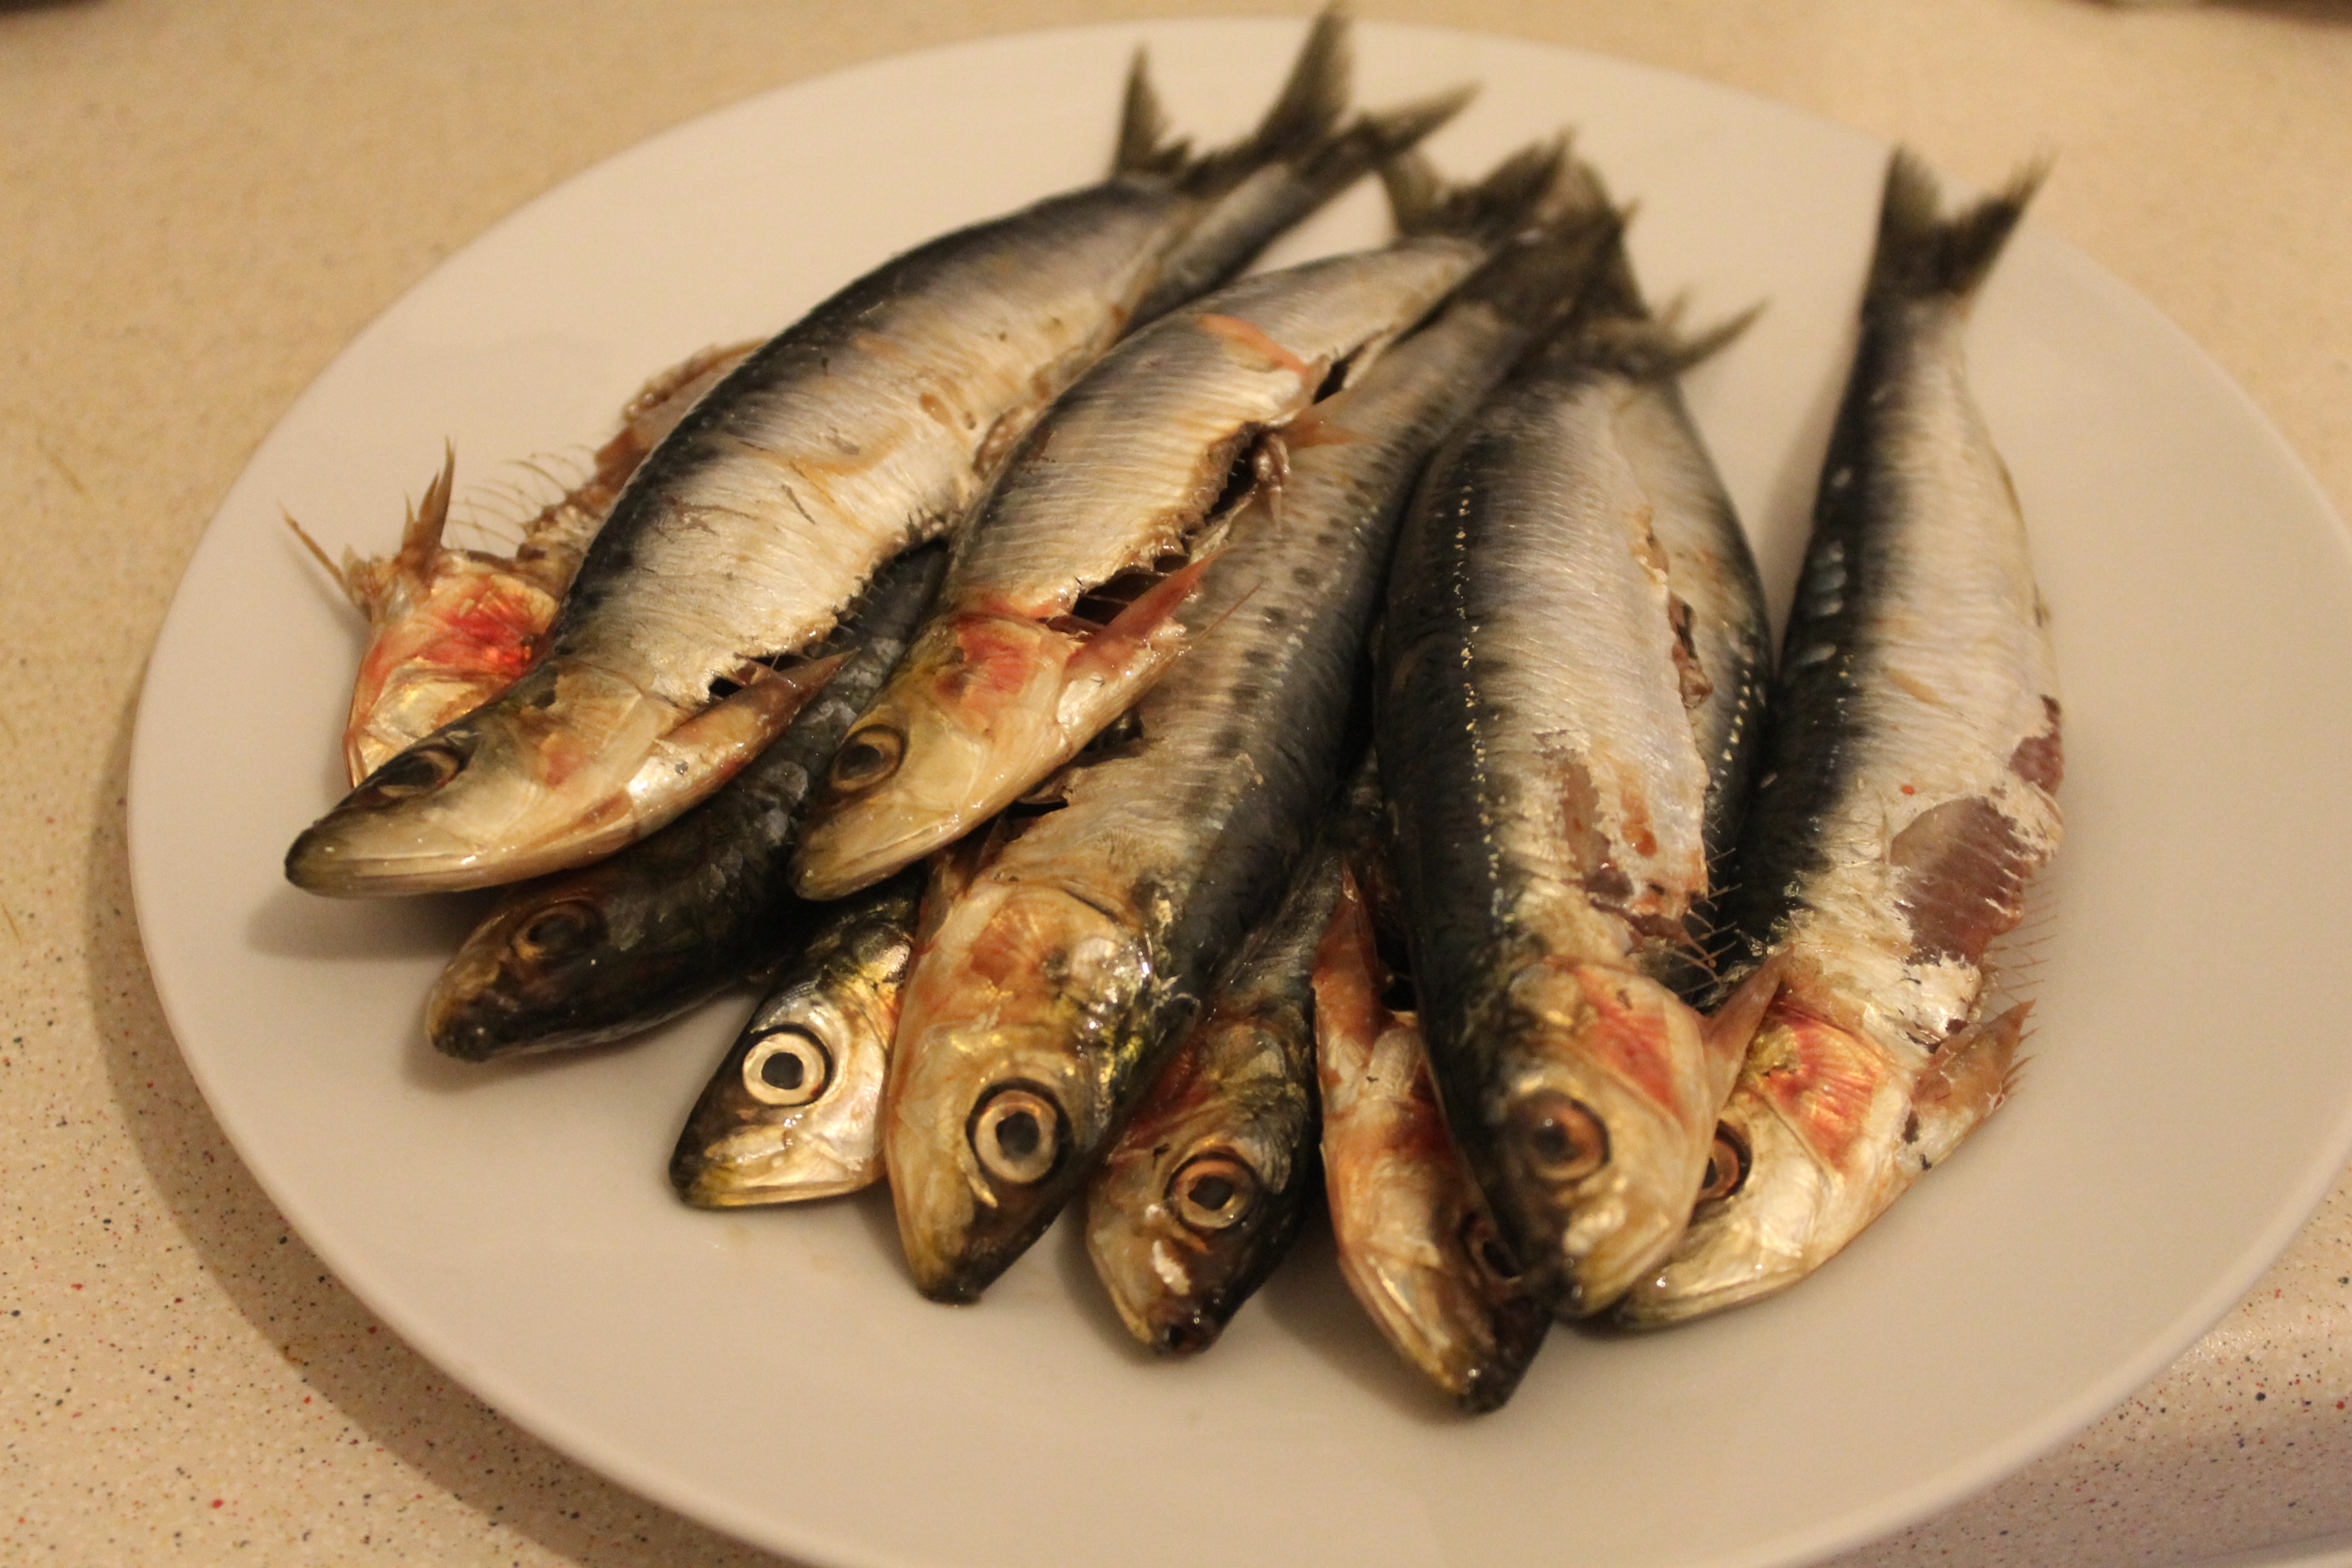 Gut And Clean The Sardines If This Hasnt Already Been Done 2 Place In A Large Flat Bowl Then Mix Together Crushed Garlic